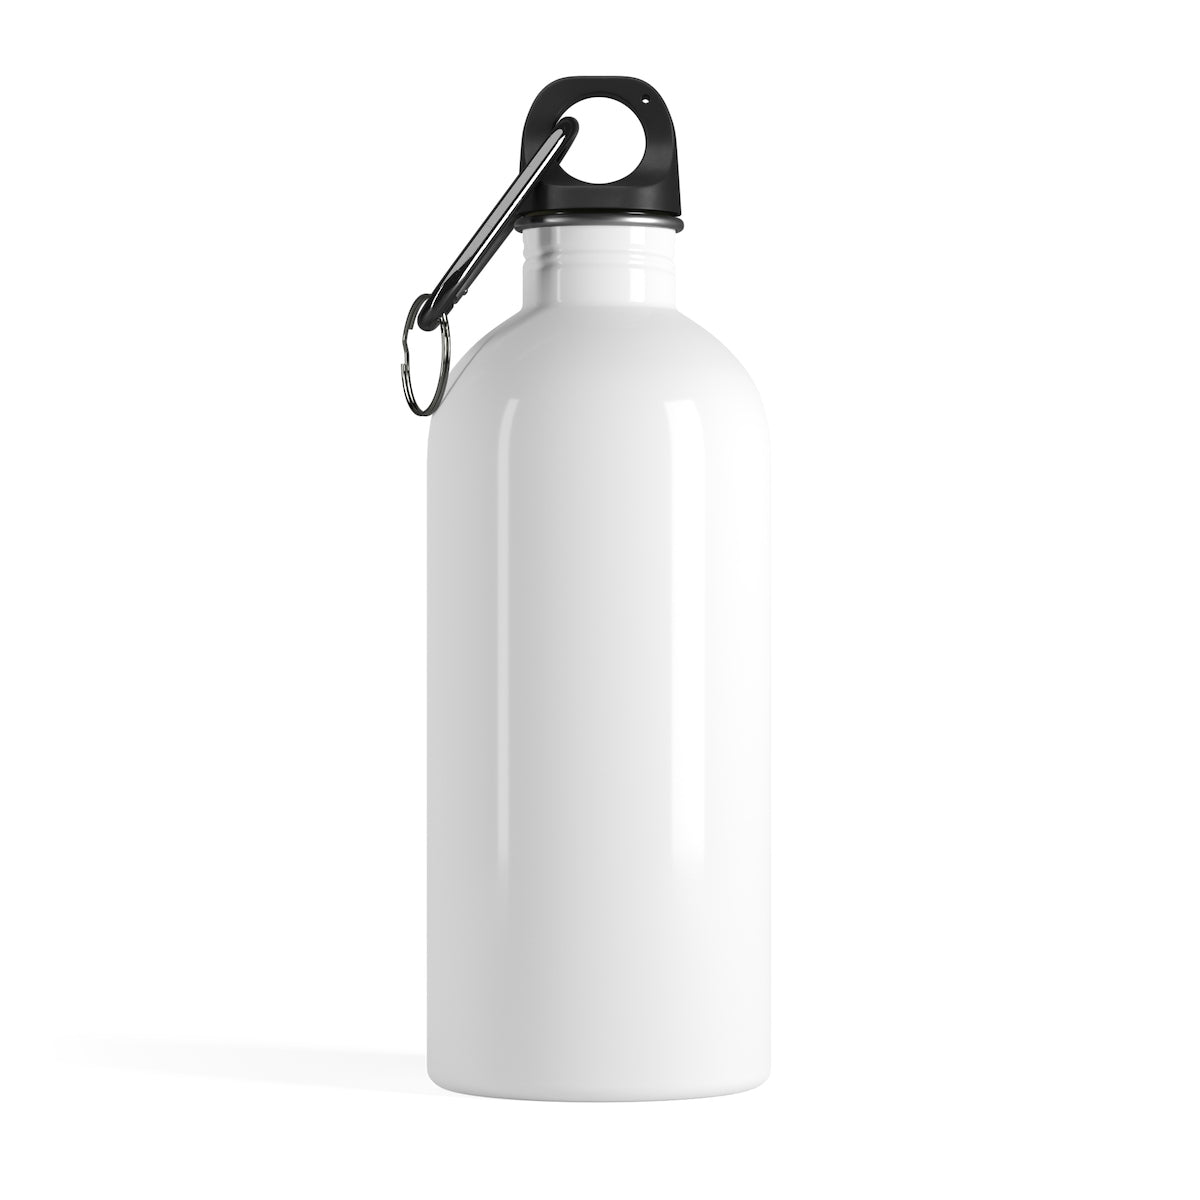 s-hy STAINLESS STEEL WATER BOTTLE